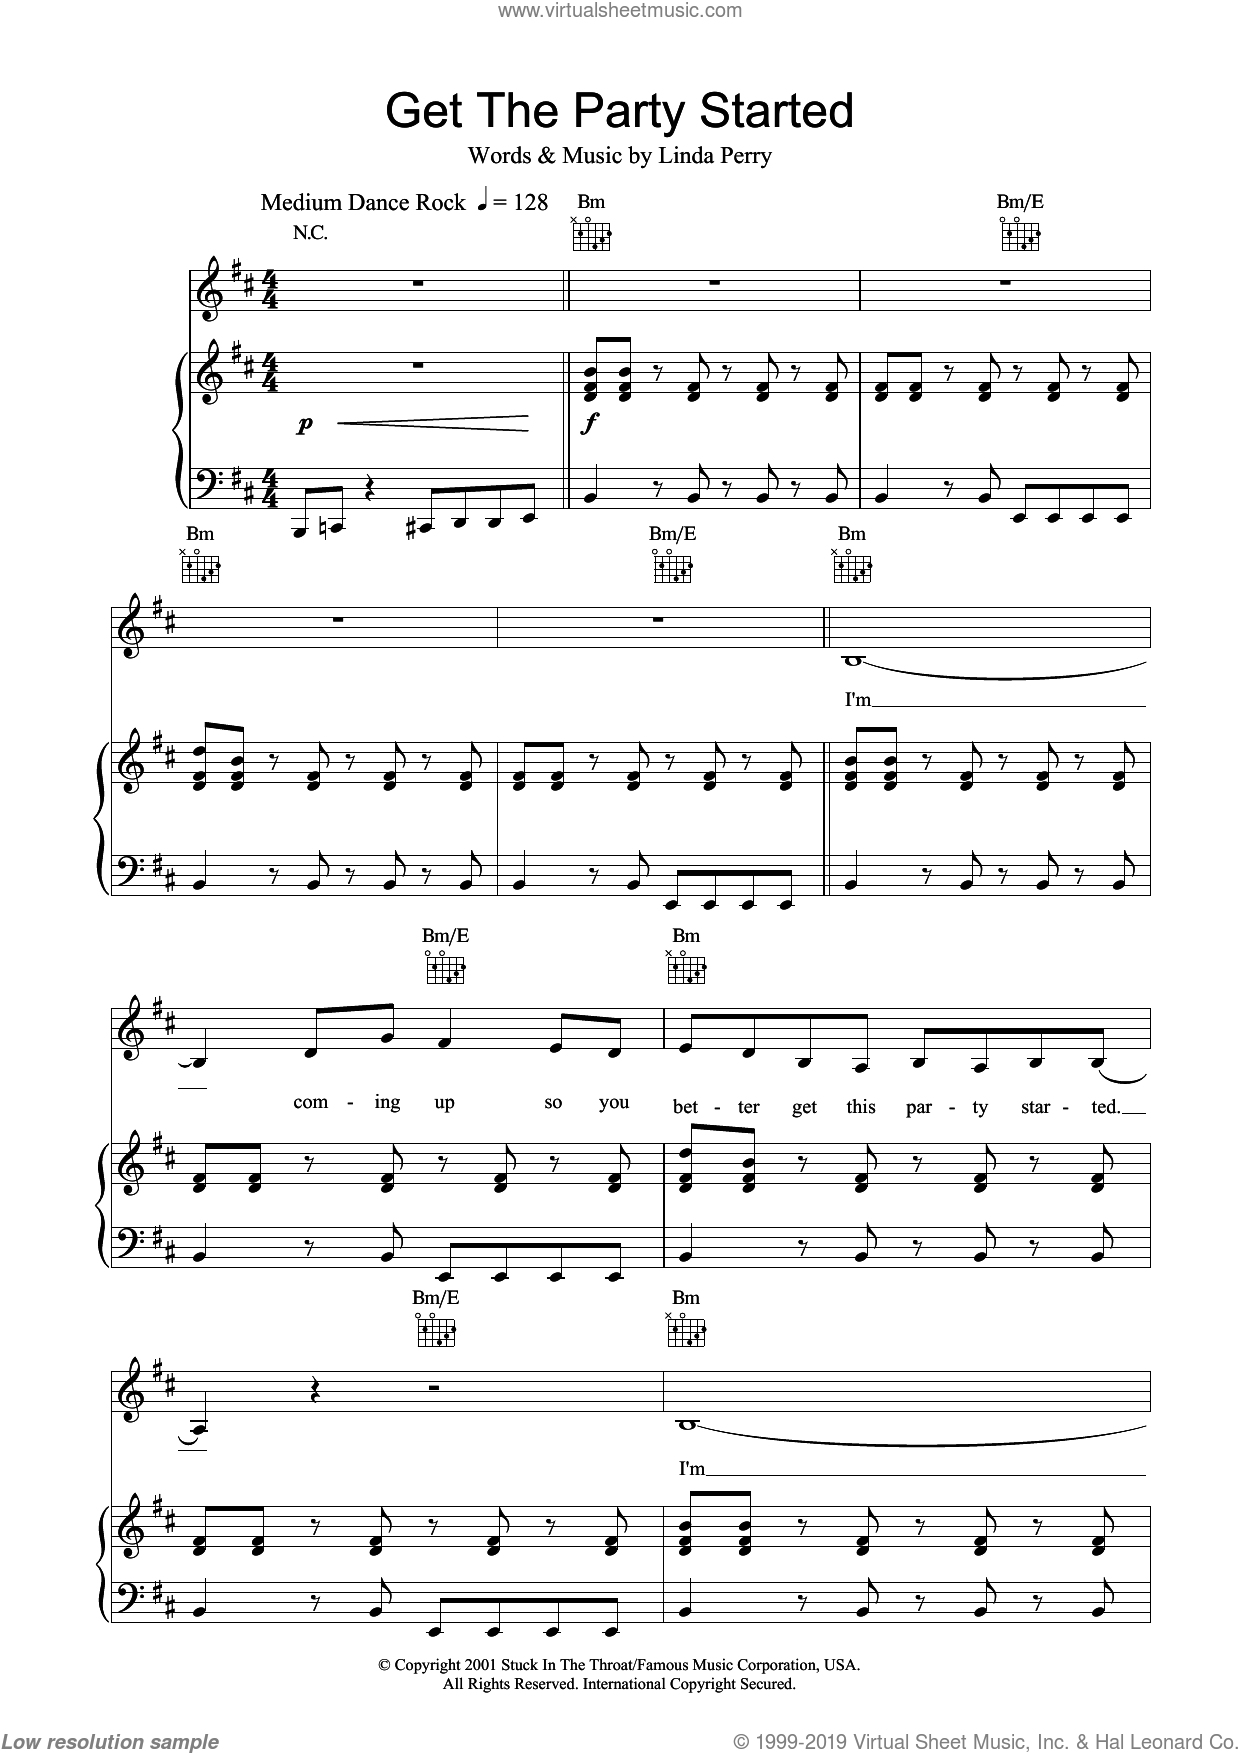 Get The Party Started sheet music for voice, piano or guitar  and Linda Perry, intermediate skill level